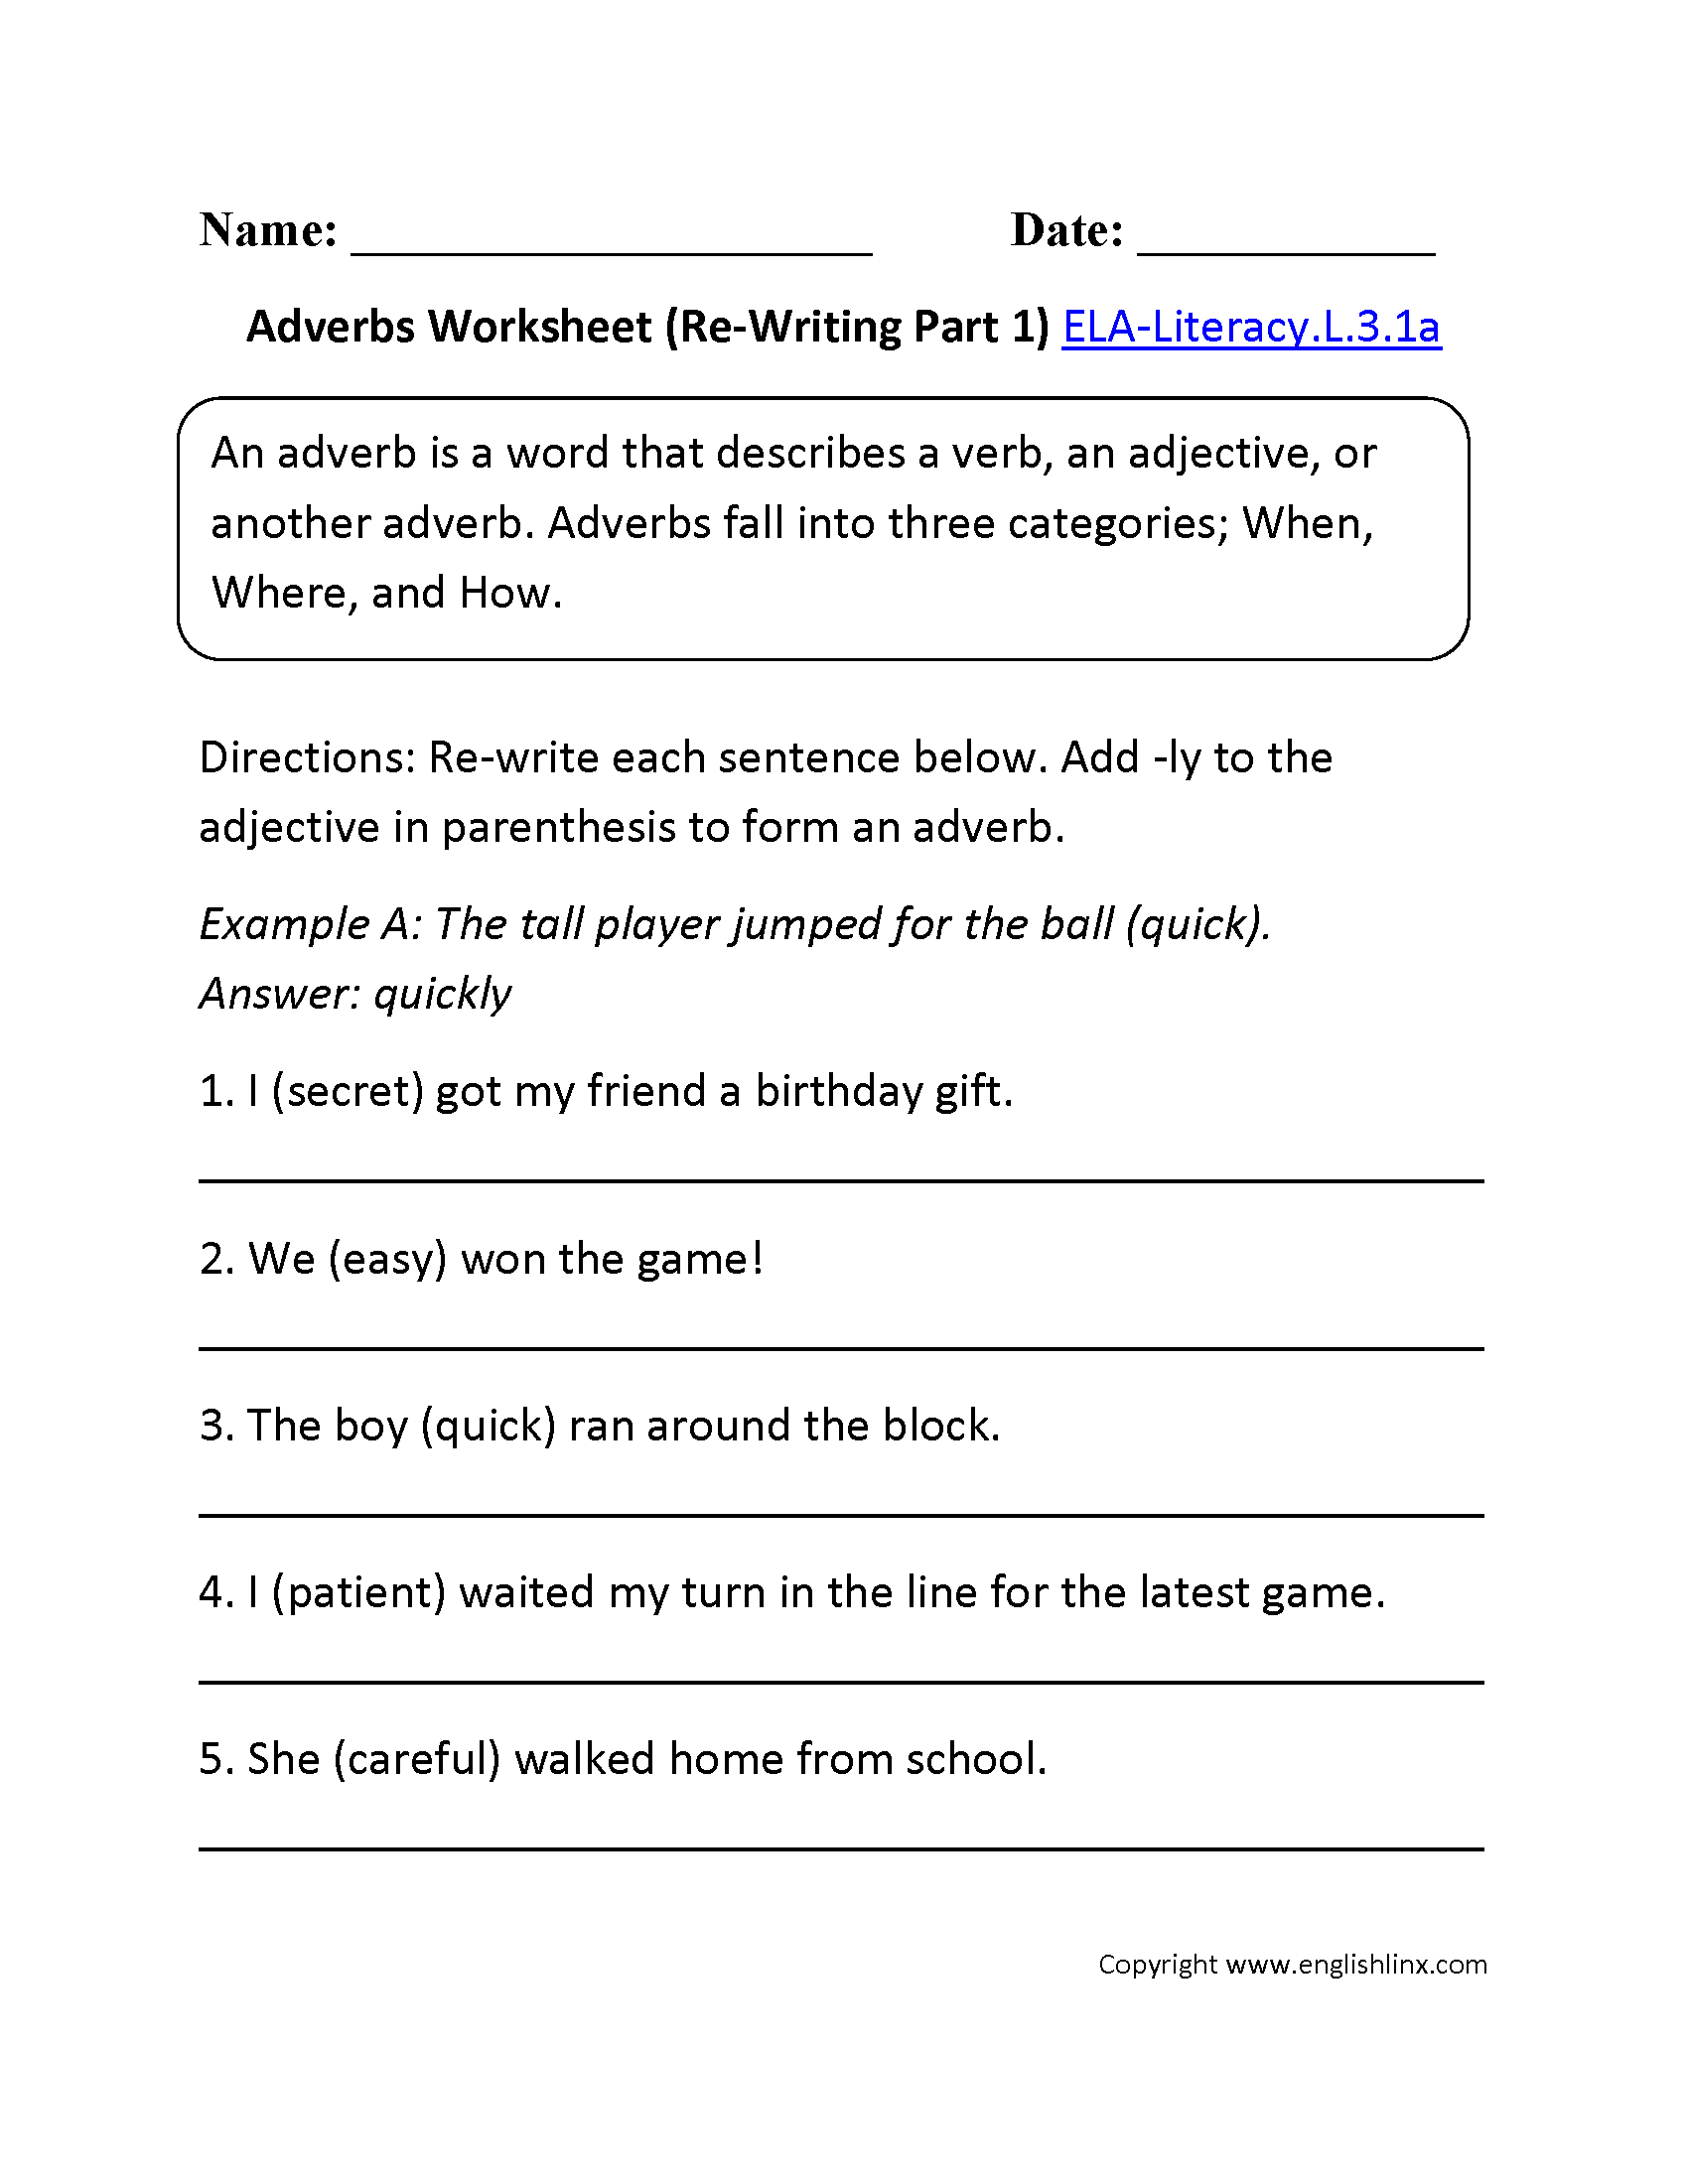 Worksheet Adjectives Worksheet For 3rd Grade pronouns worksheet 2 l 3 1 pinterest language adjectives ela literacy 1a worksheet